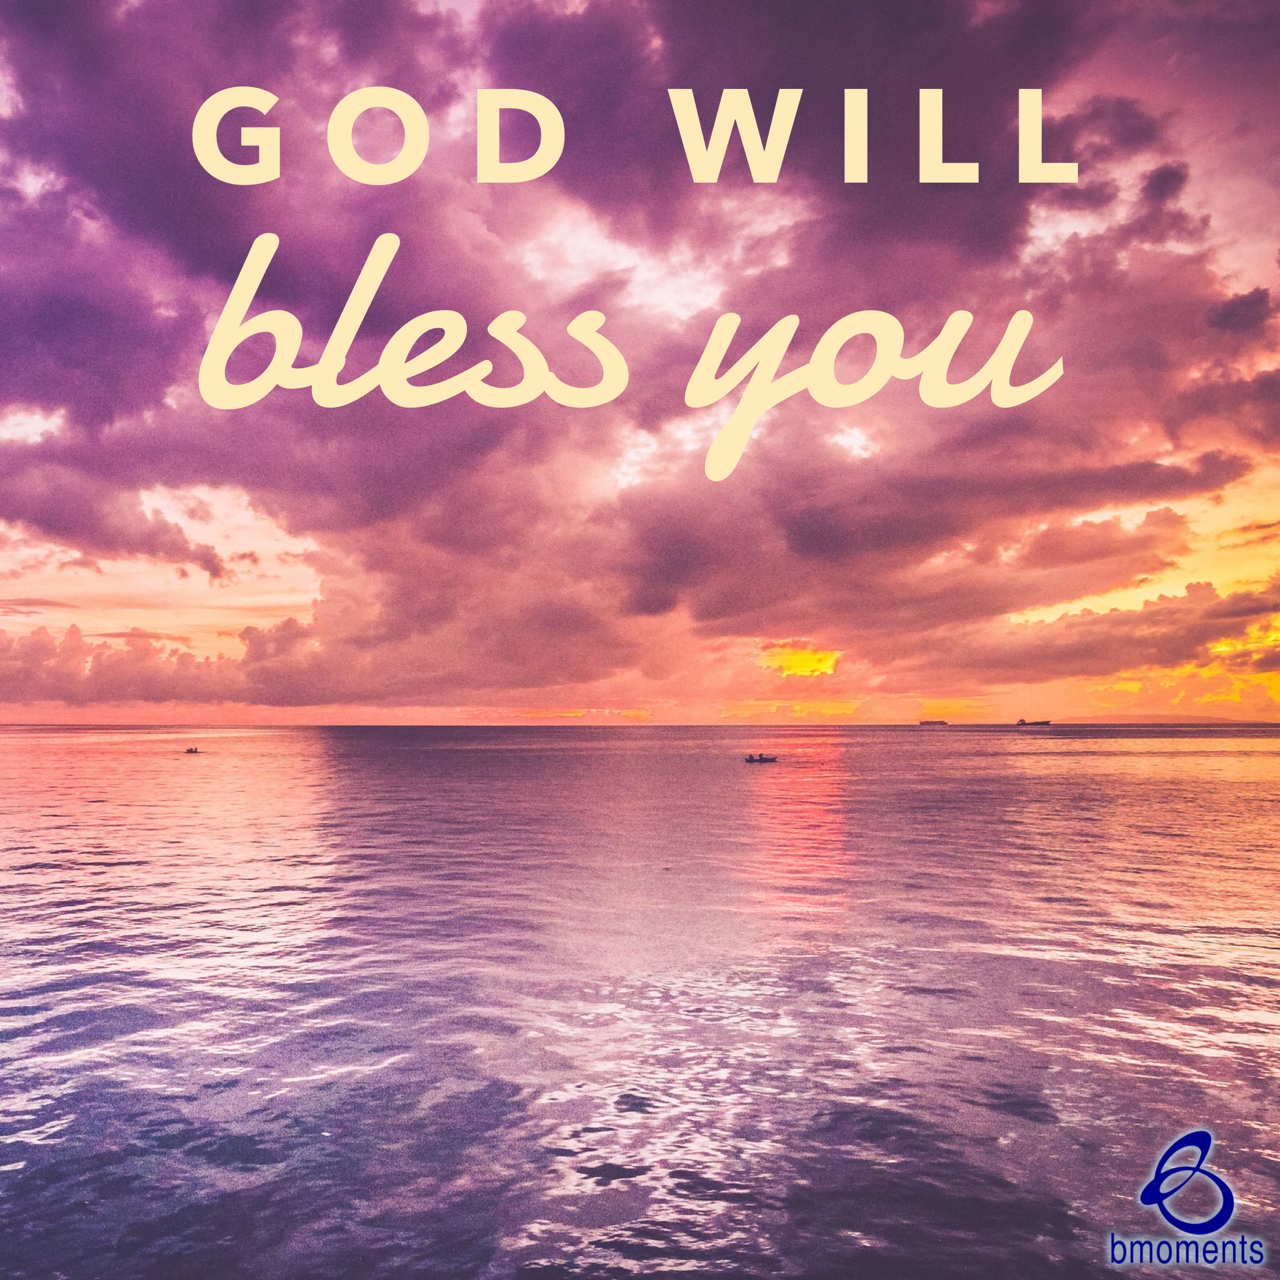 God Will Bless You in Unimaginable Ways